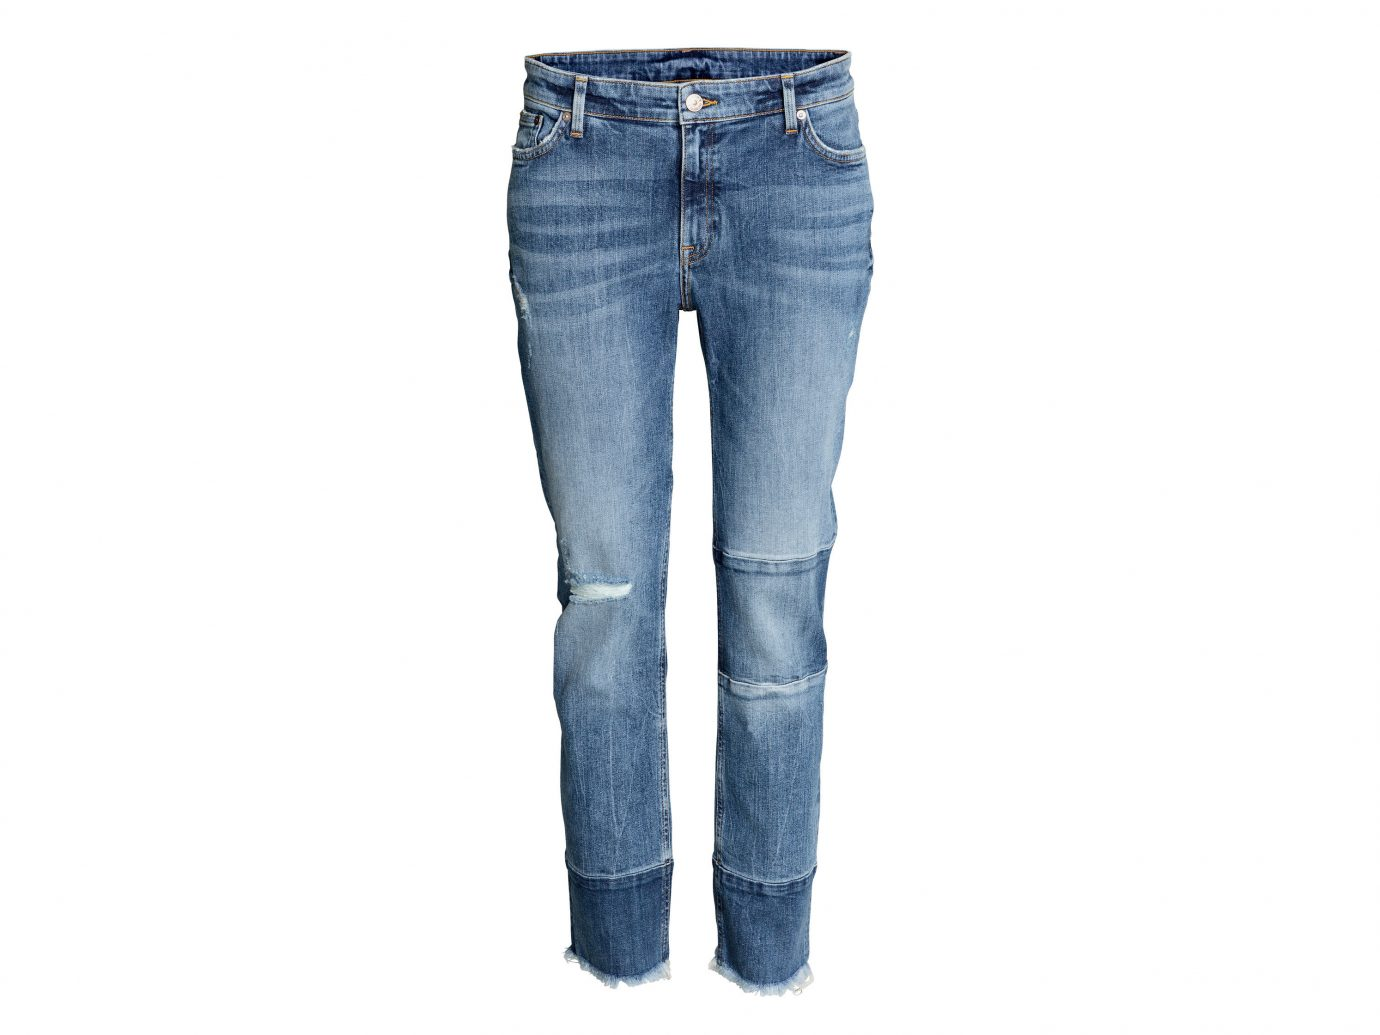 Style + Design person jeans denim clothing trouser standing trousers pocket textile abdomen material posing